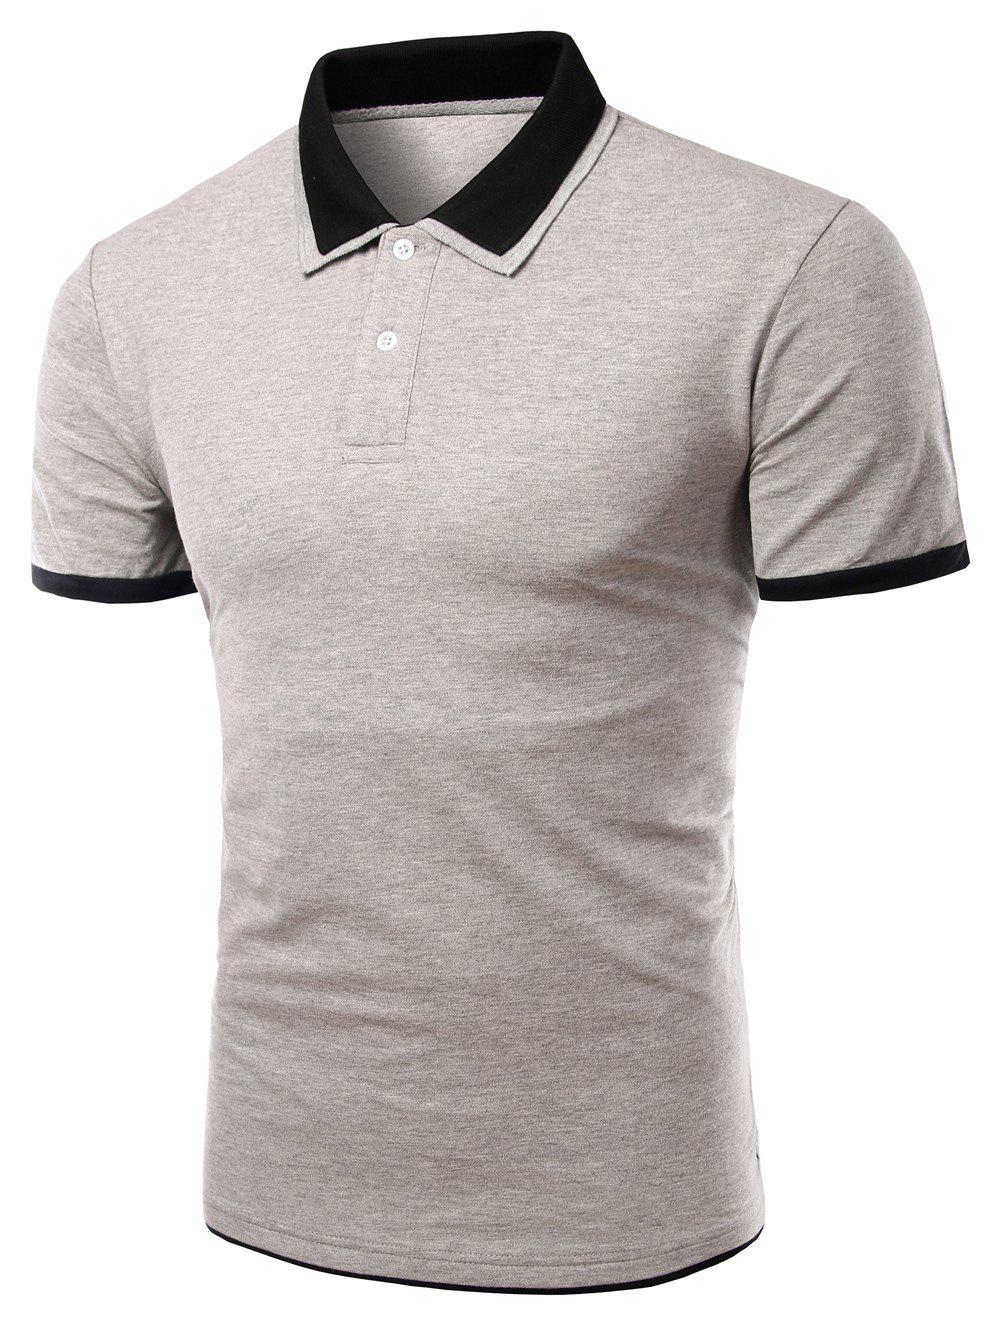 Men's Turn-down Collar Solid  Color Short Sleeves Polo T-Shirt - GRAY L